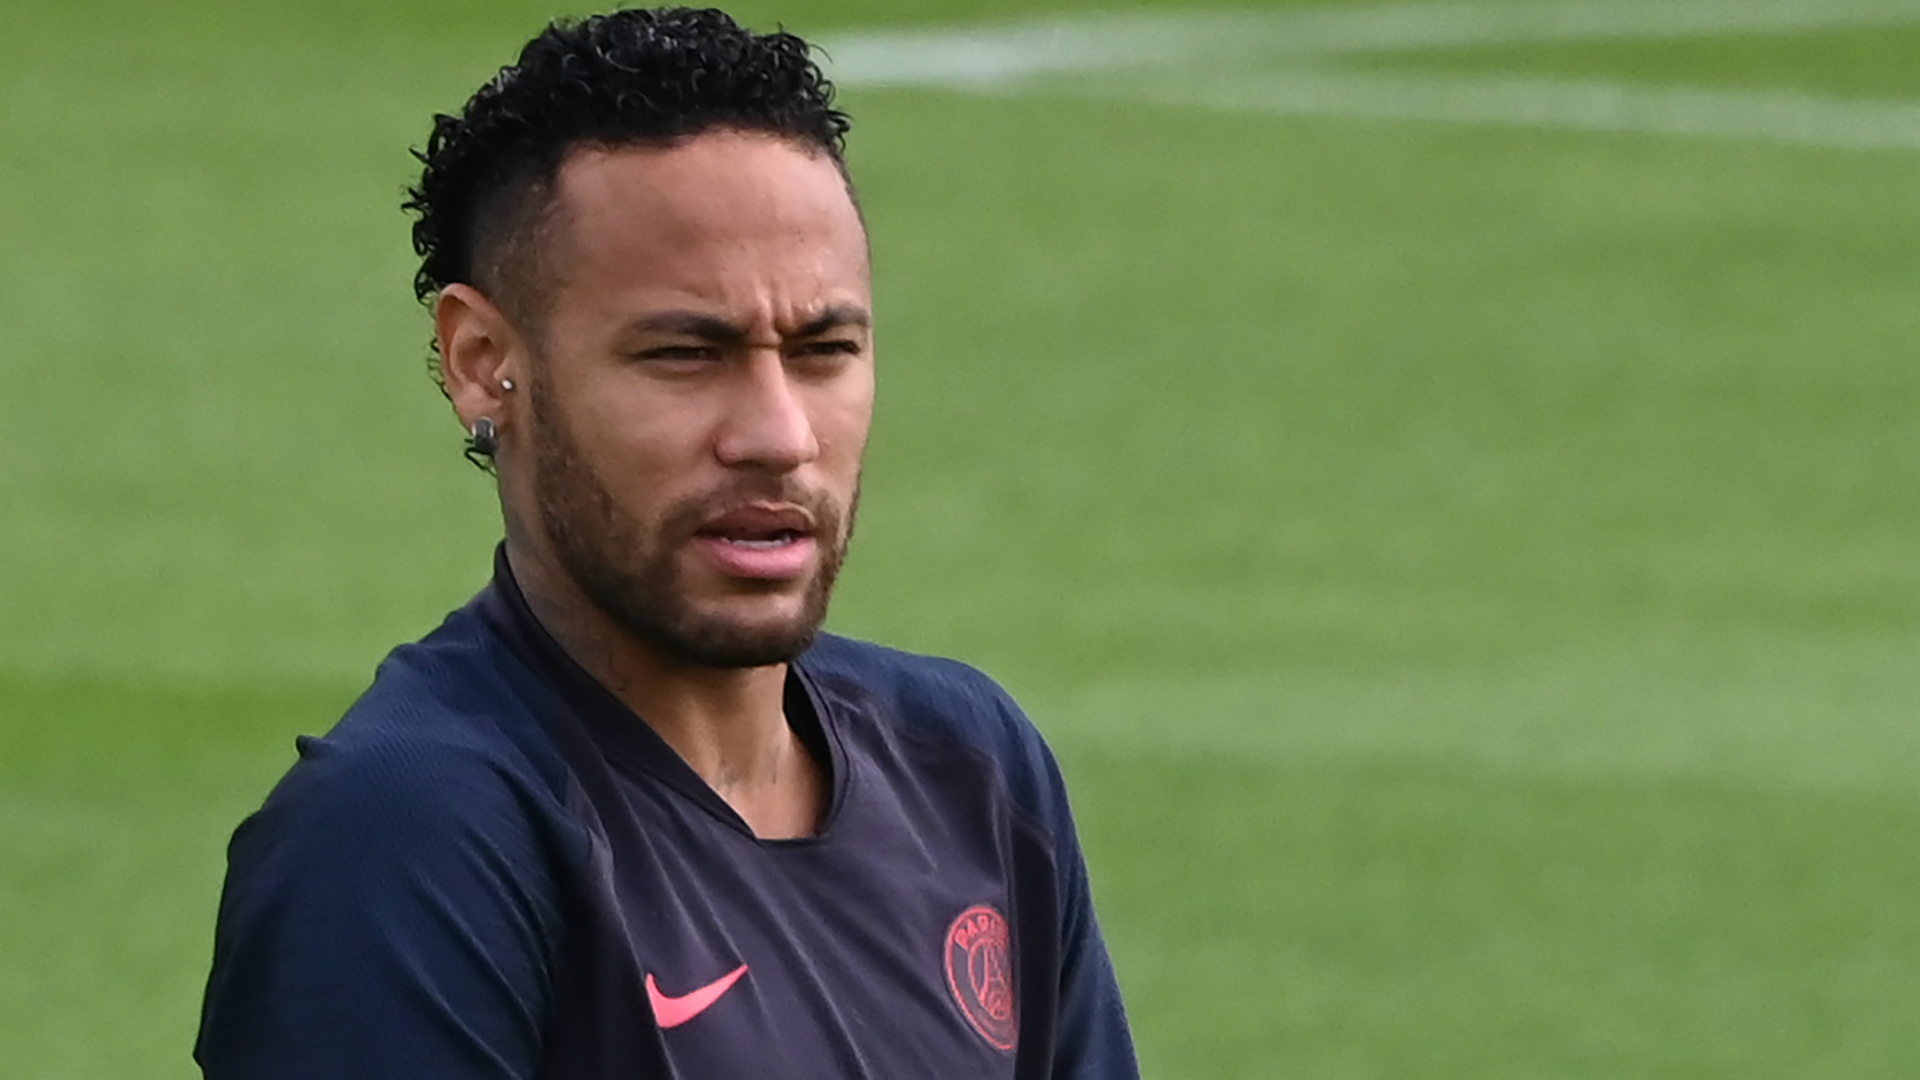 PSG not the same without Neymar – Mbappe